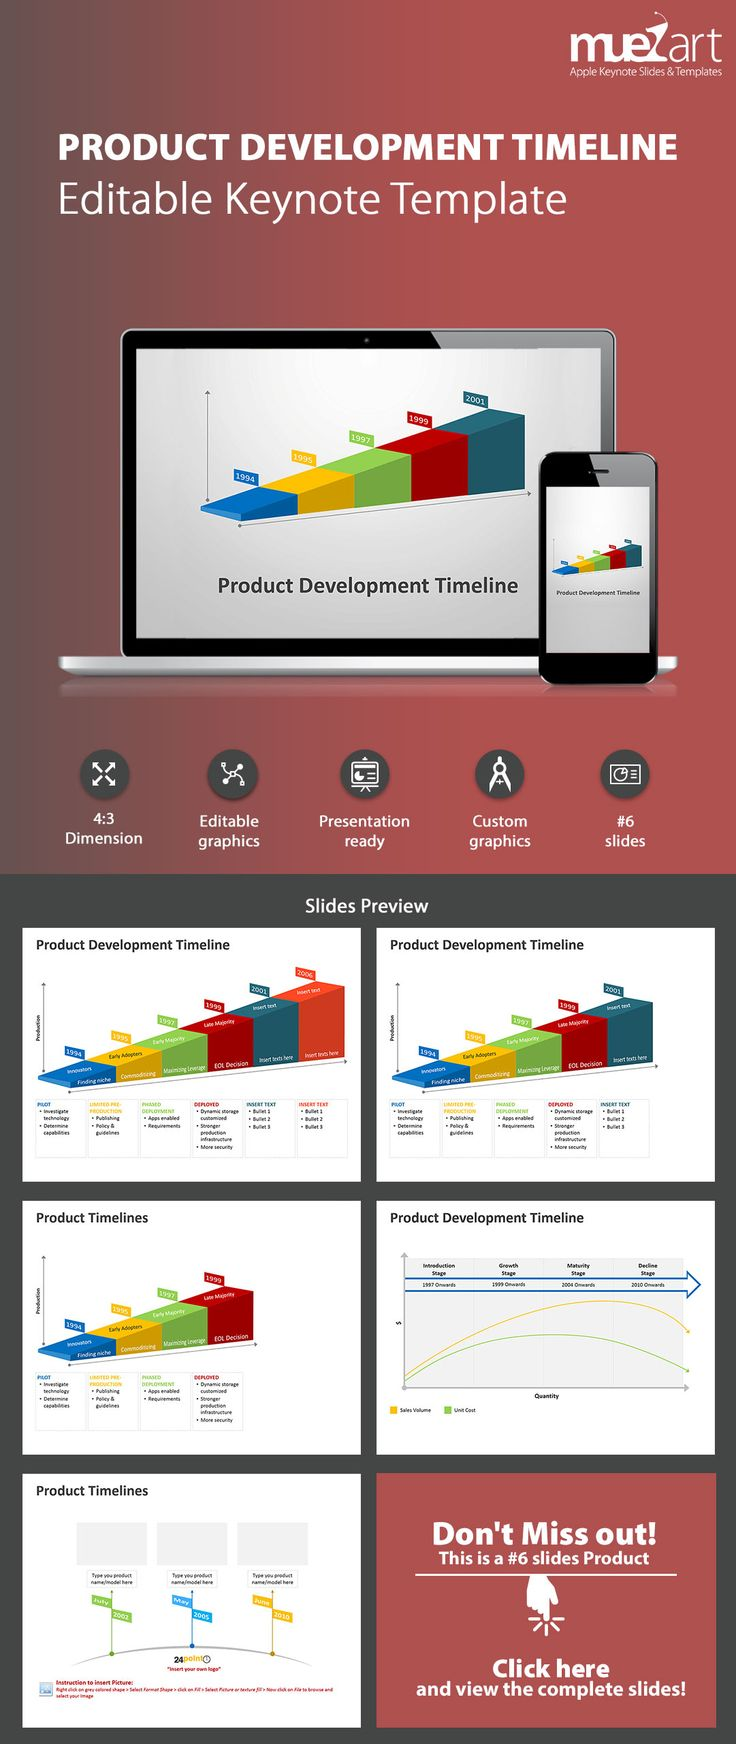 The 25 best ideas about Project Timeline Template – Production Timeline Template